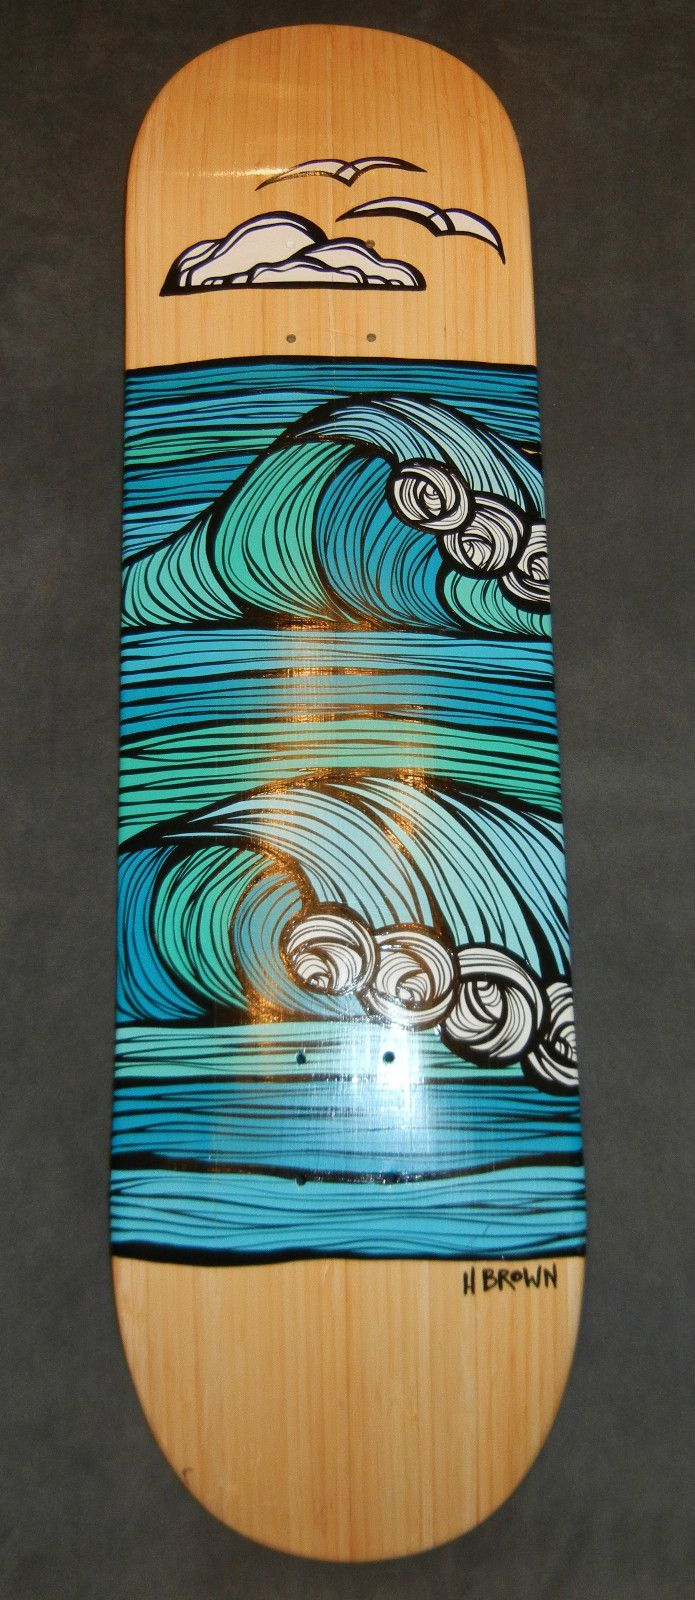 heather brown original painting on bamboo skateboard - Skateboard Design Ideas